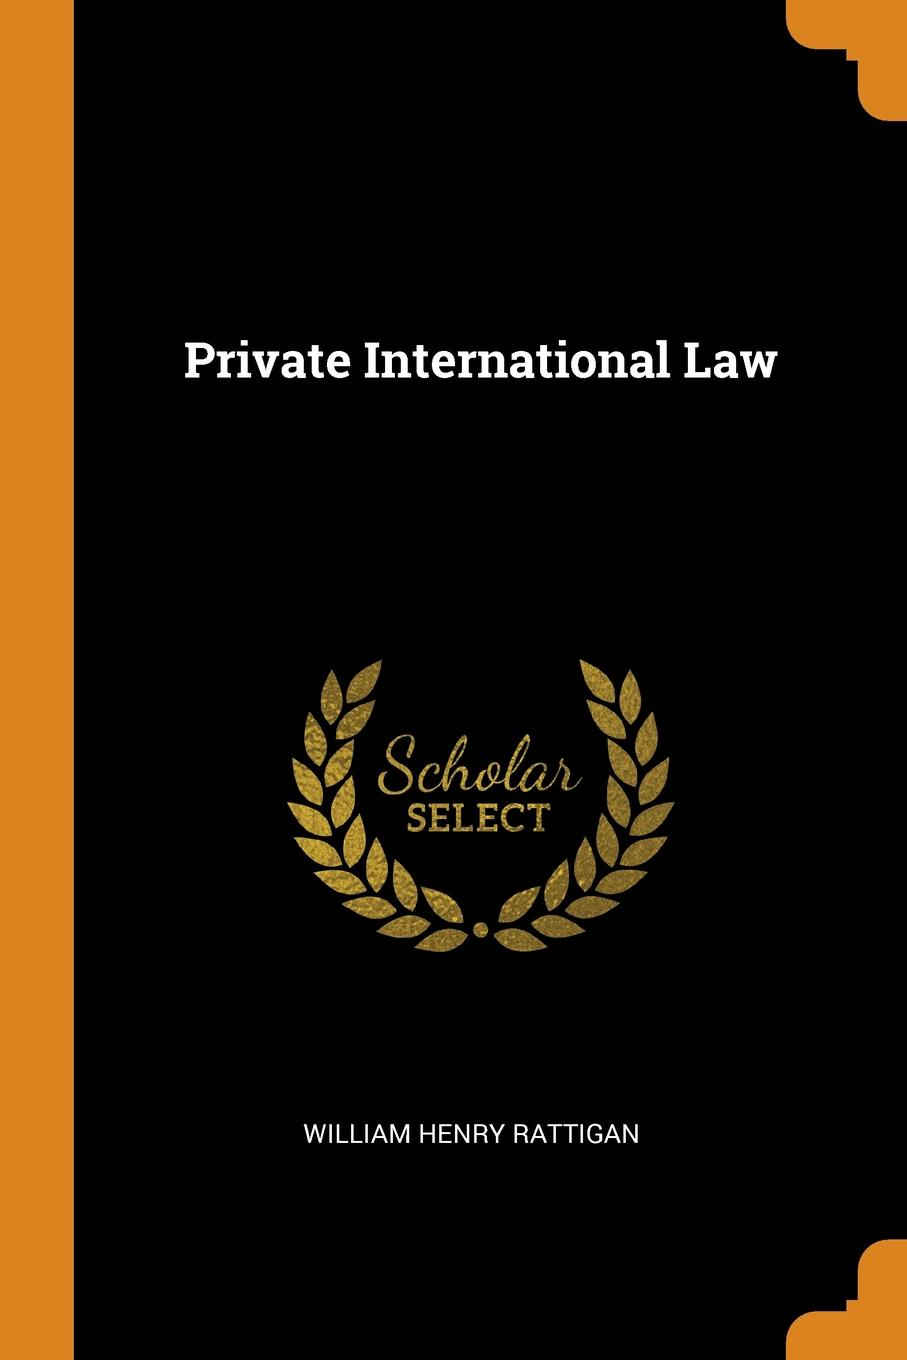 Private International Law. William Henry Rattigan